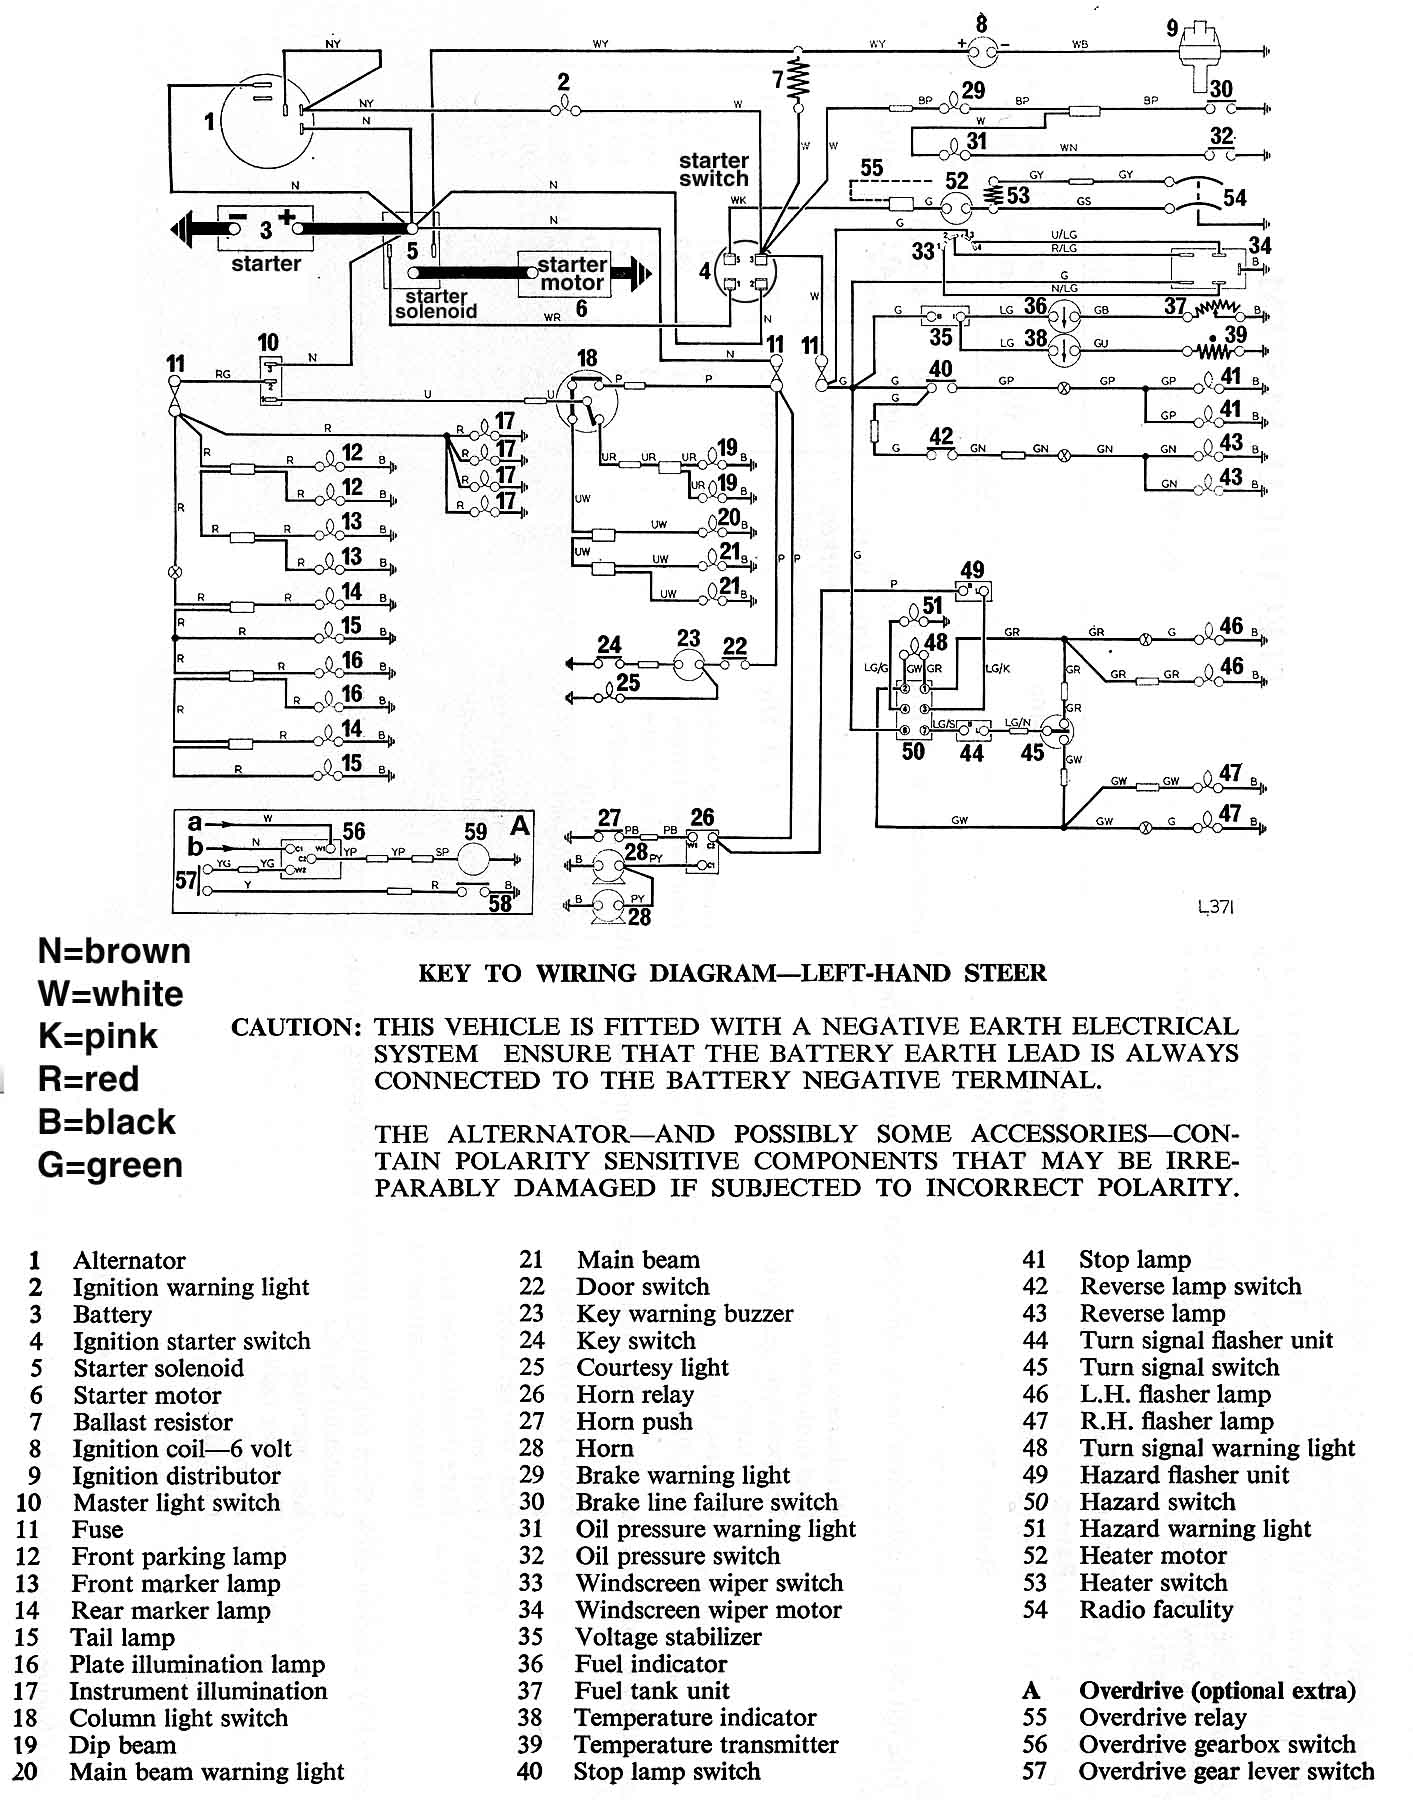 MKIVwire wiring schematics and diagrams triumph spitfire, gt6, herald 1979 triumph spitfire wiring harness at webbmarketing.co